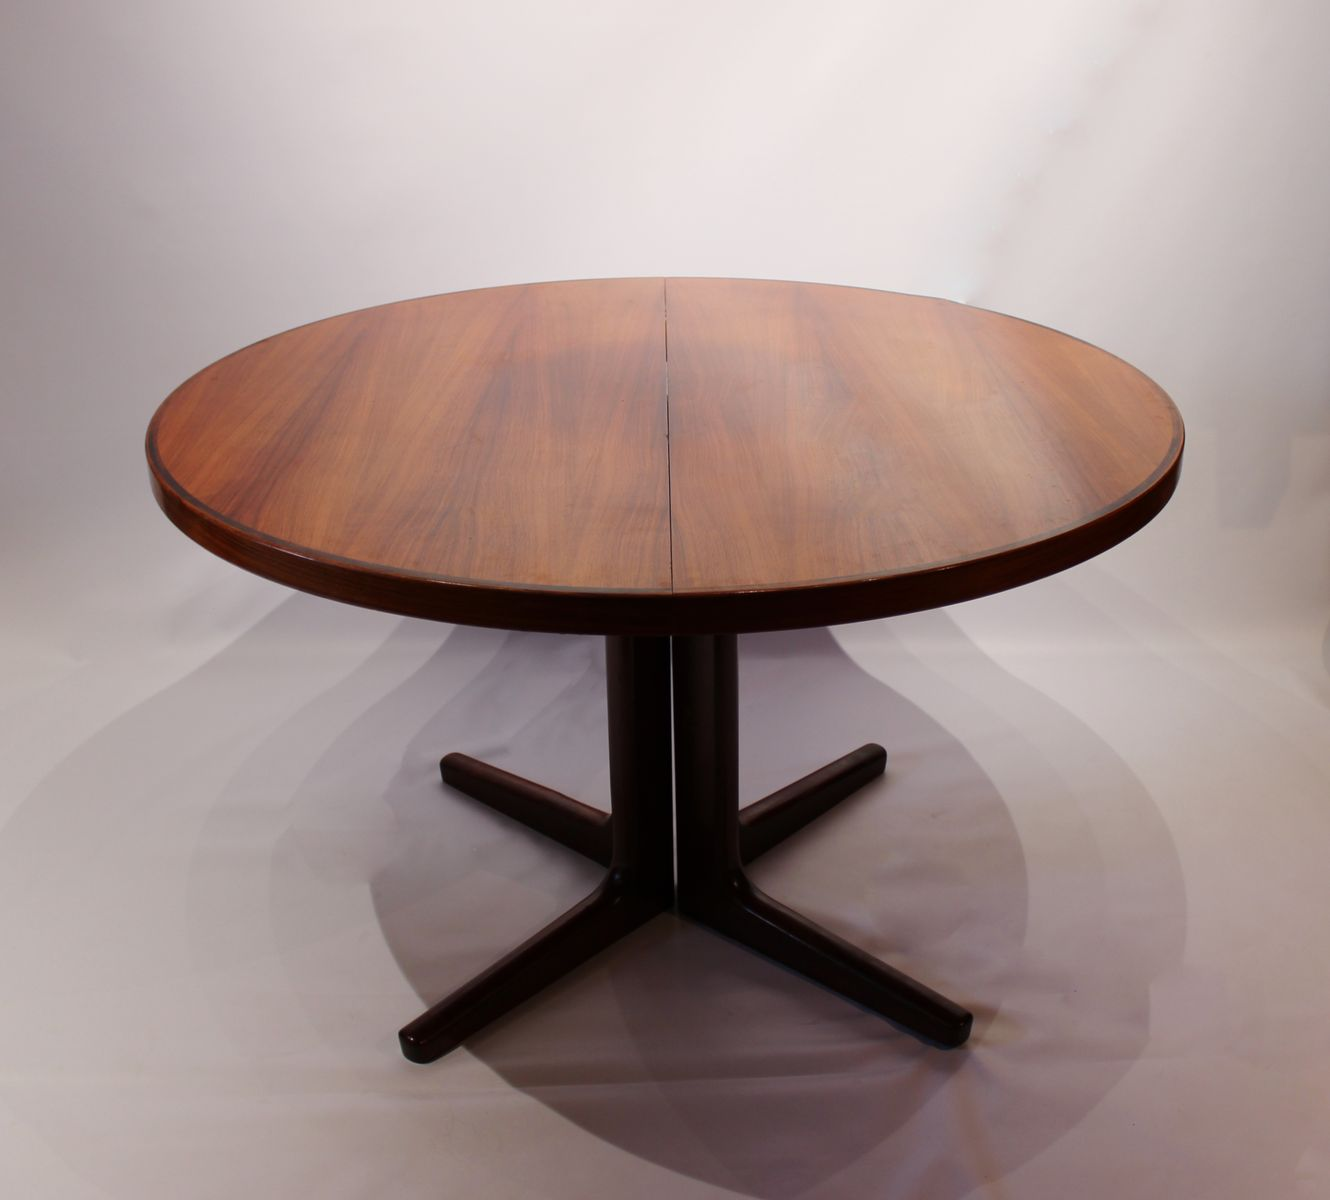 Danish Rosewood Round Dining Table With 2 Extensions From Vejle  Mobelfabrik, 1960s